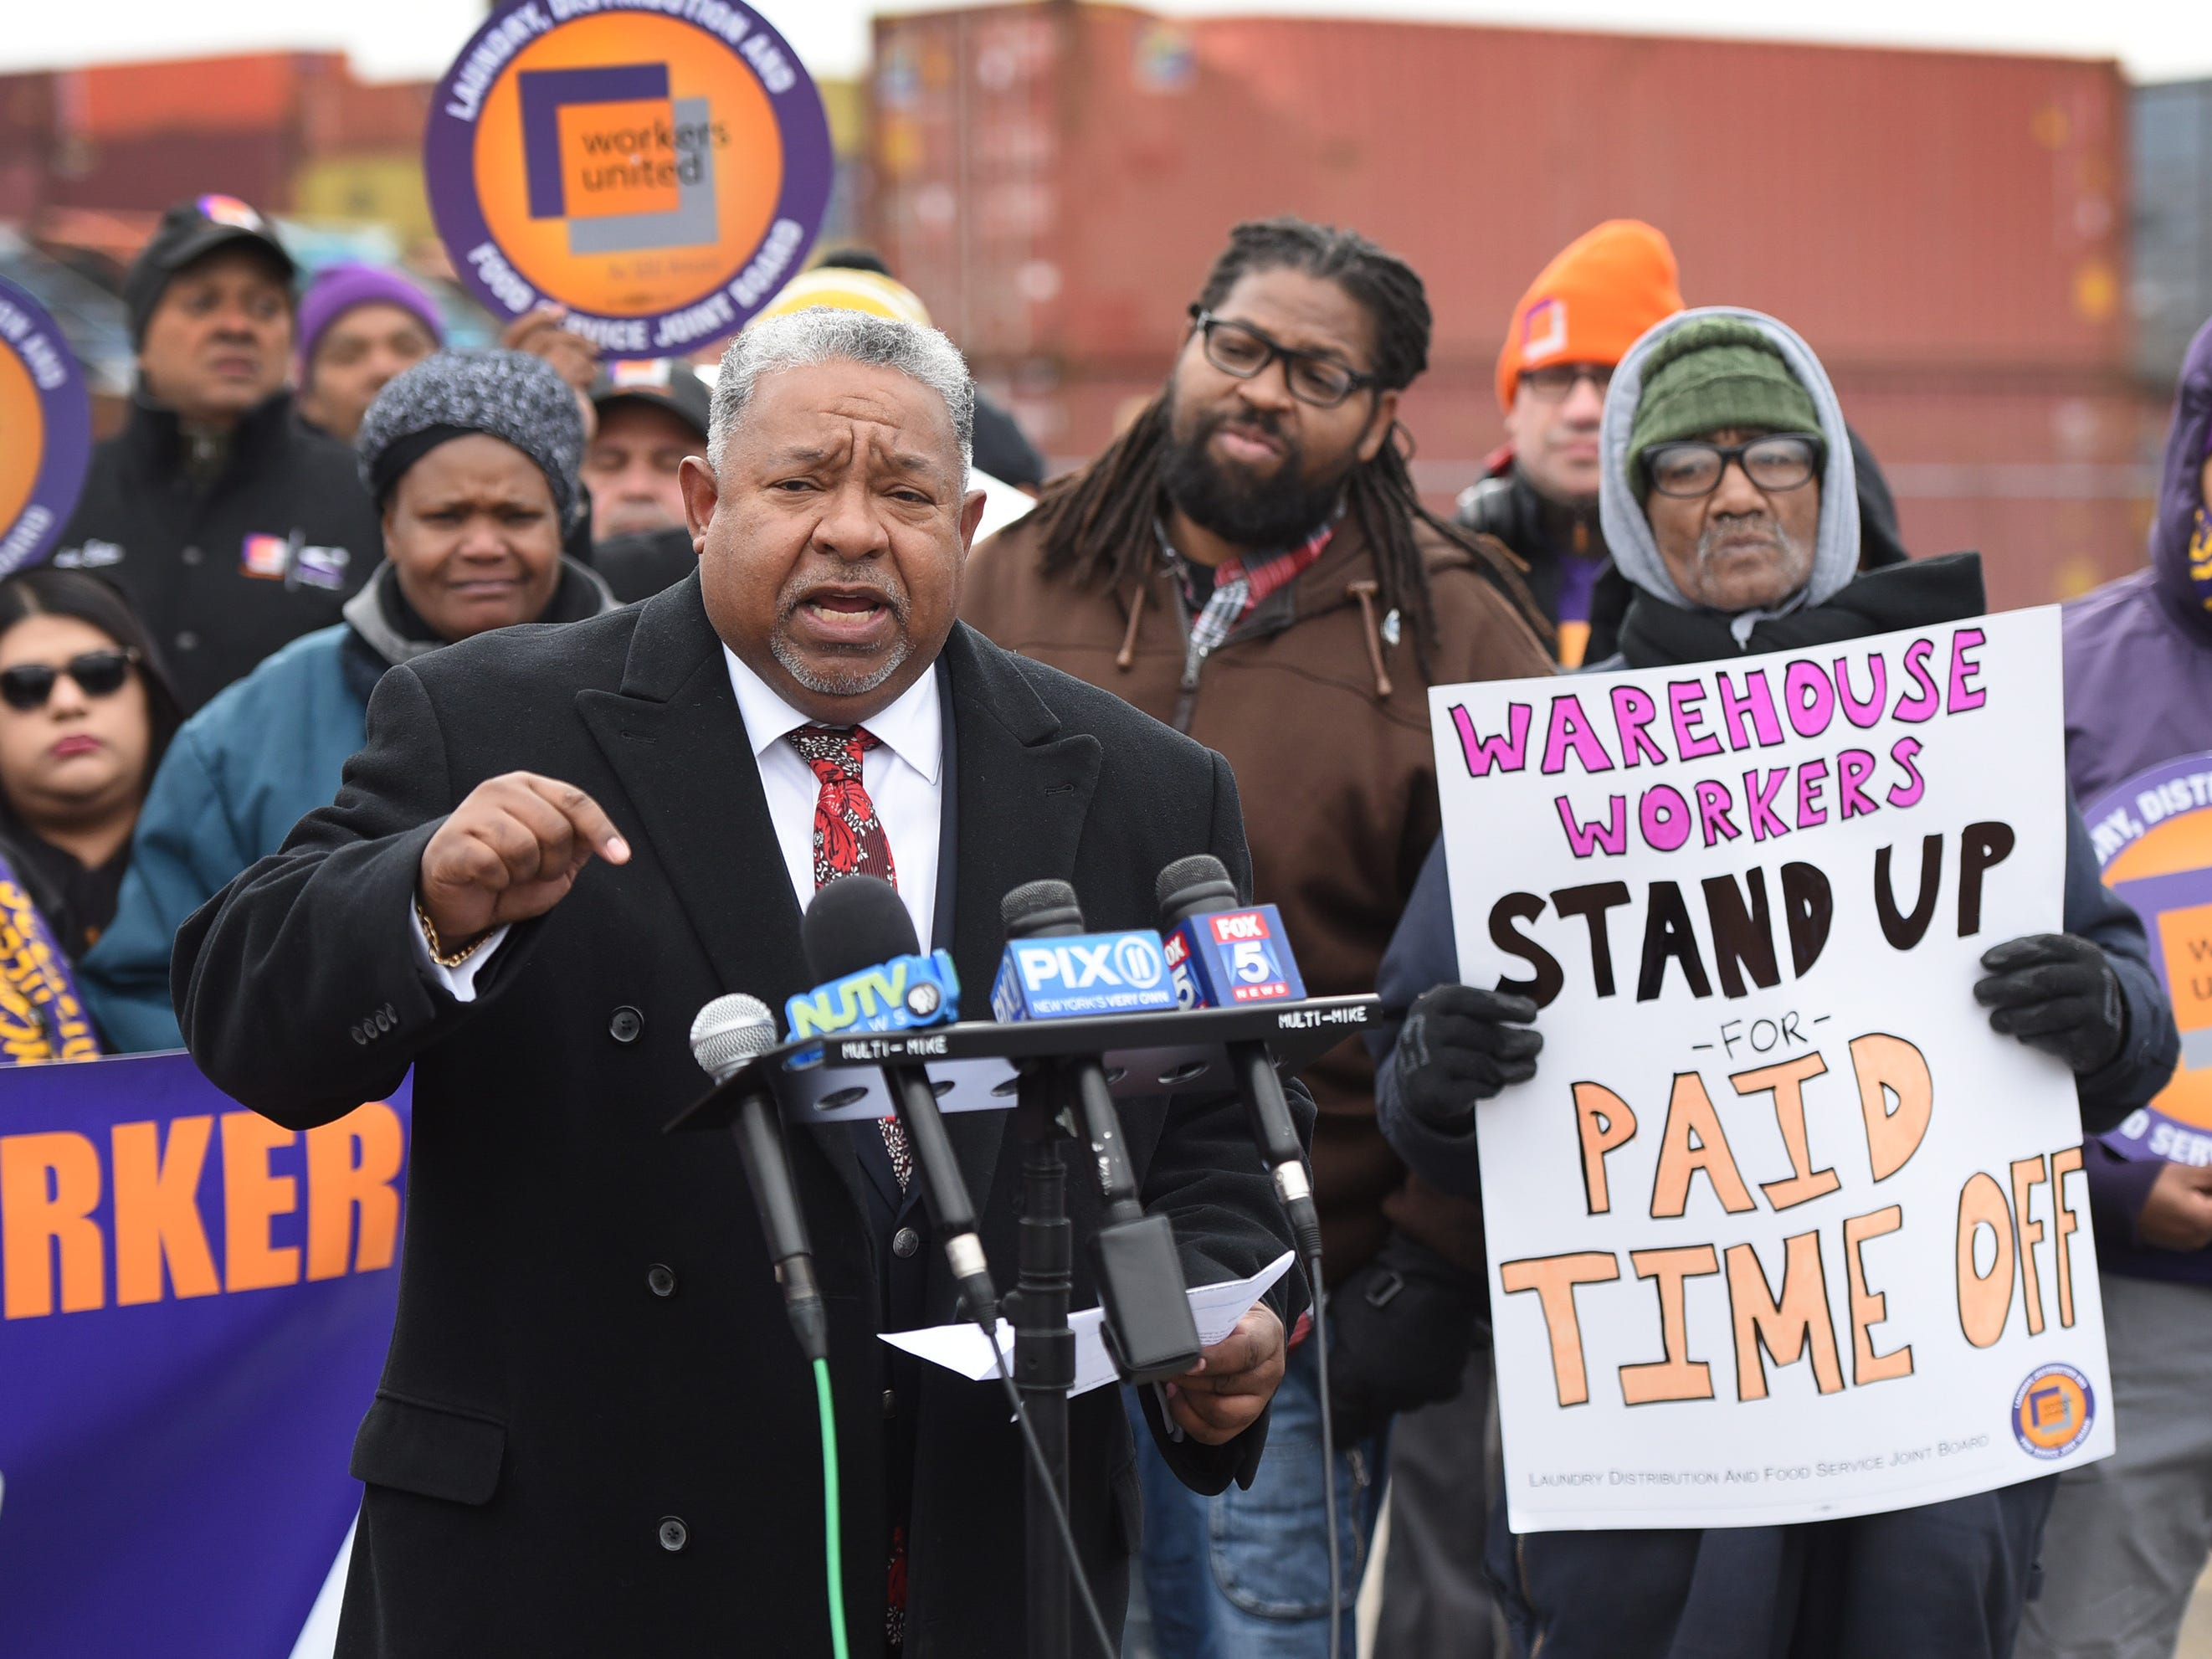 Charles N. Hall, Jr. President of Retail Wholesale and Department Store Union, speaks during a press conference at the Port of Newark to call for greater protections for warehouse workers, photographed at the corner of Corbin and Marsh streets in Newark on 12/12/18.